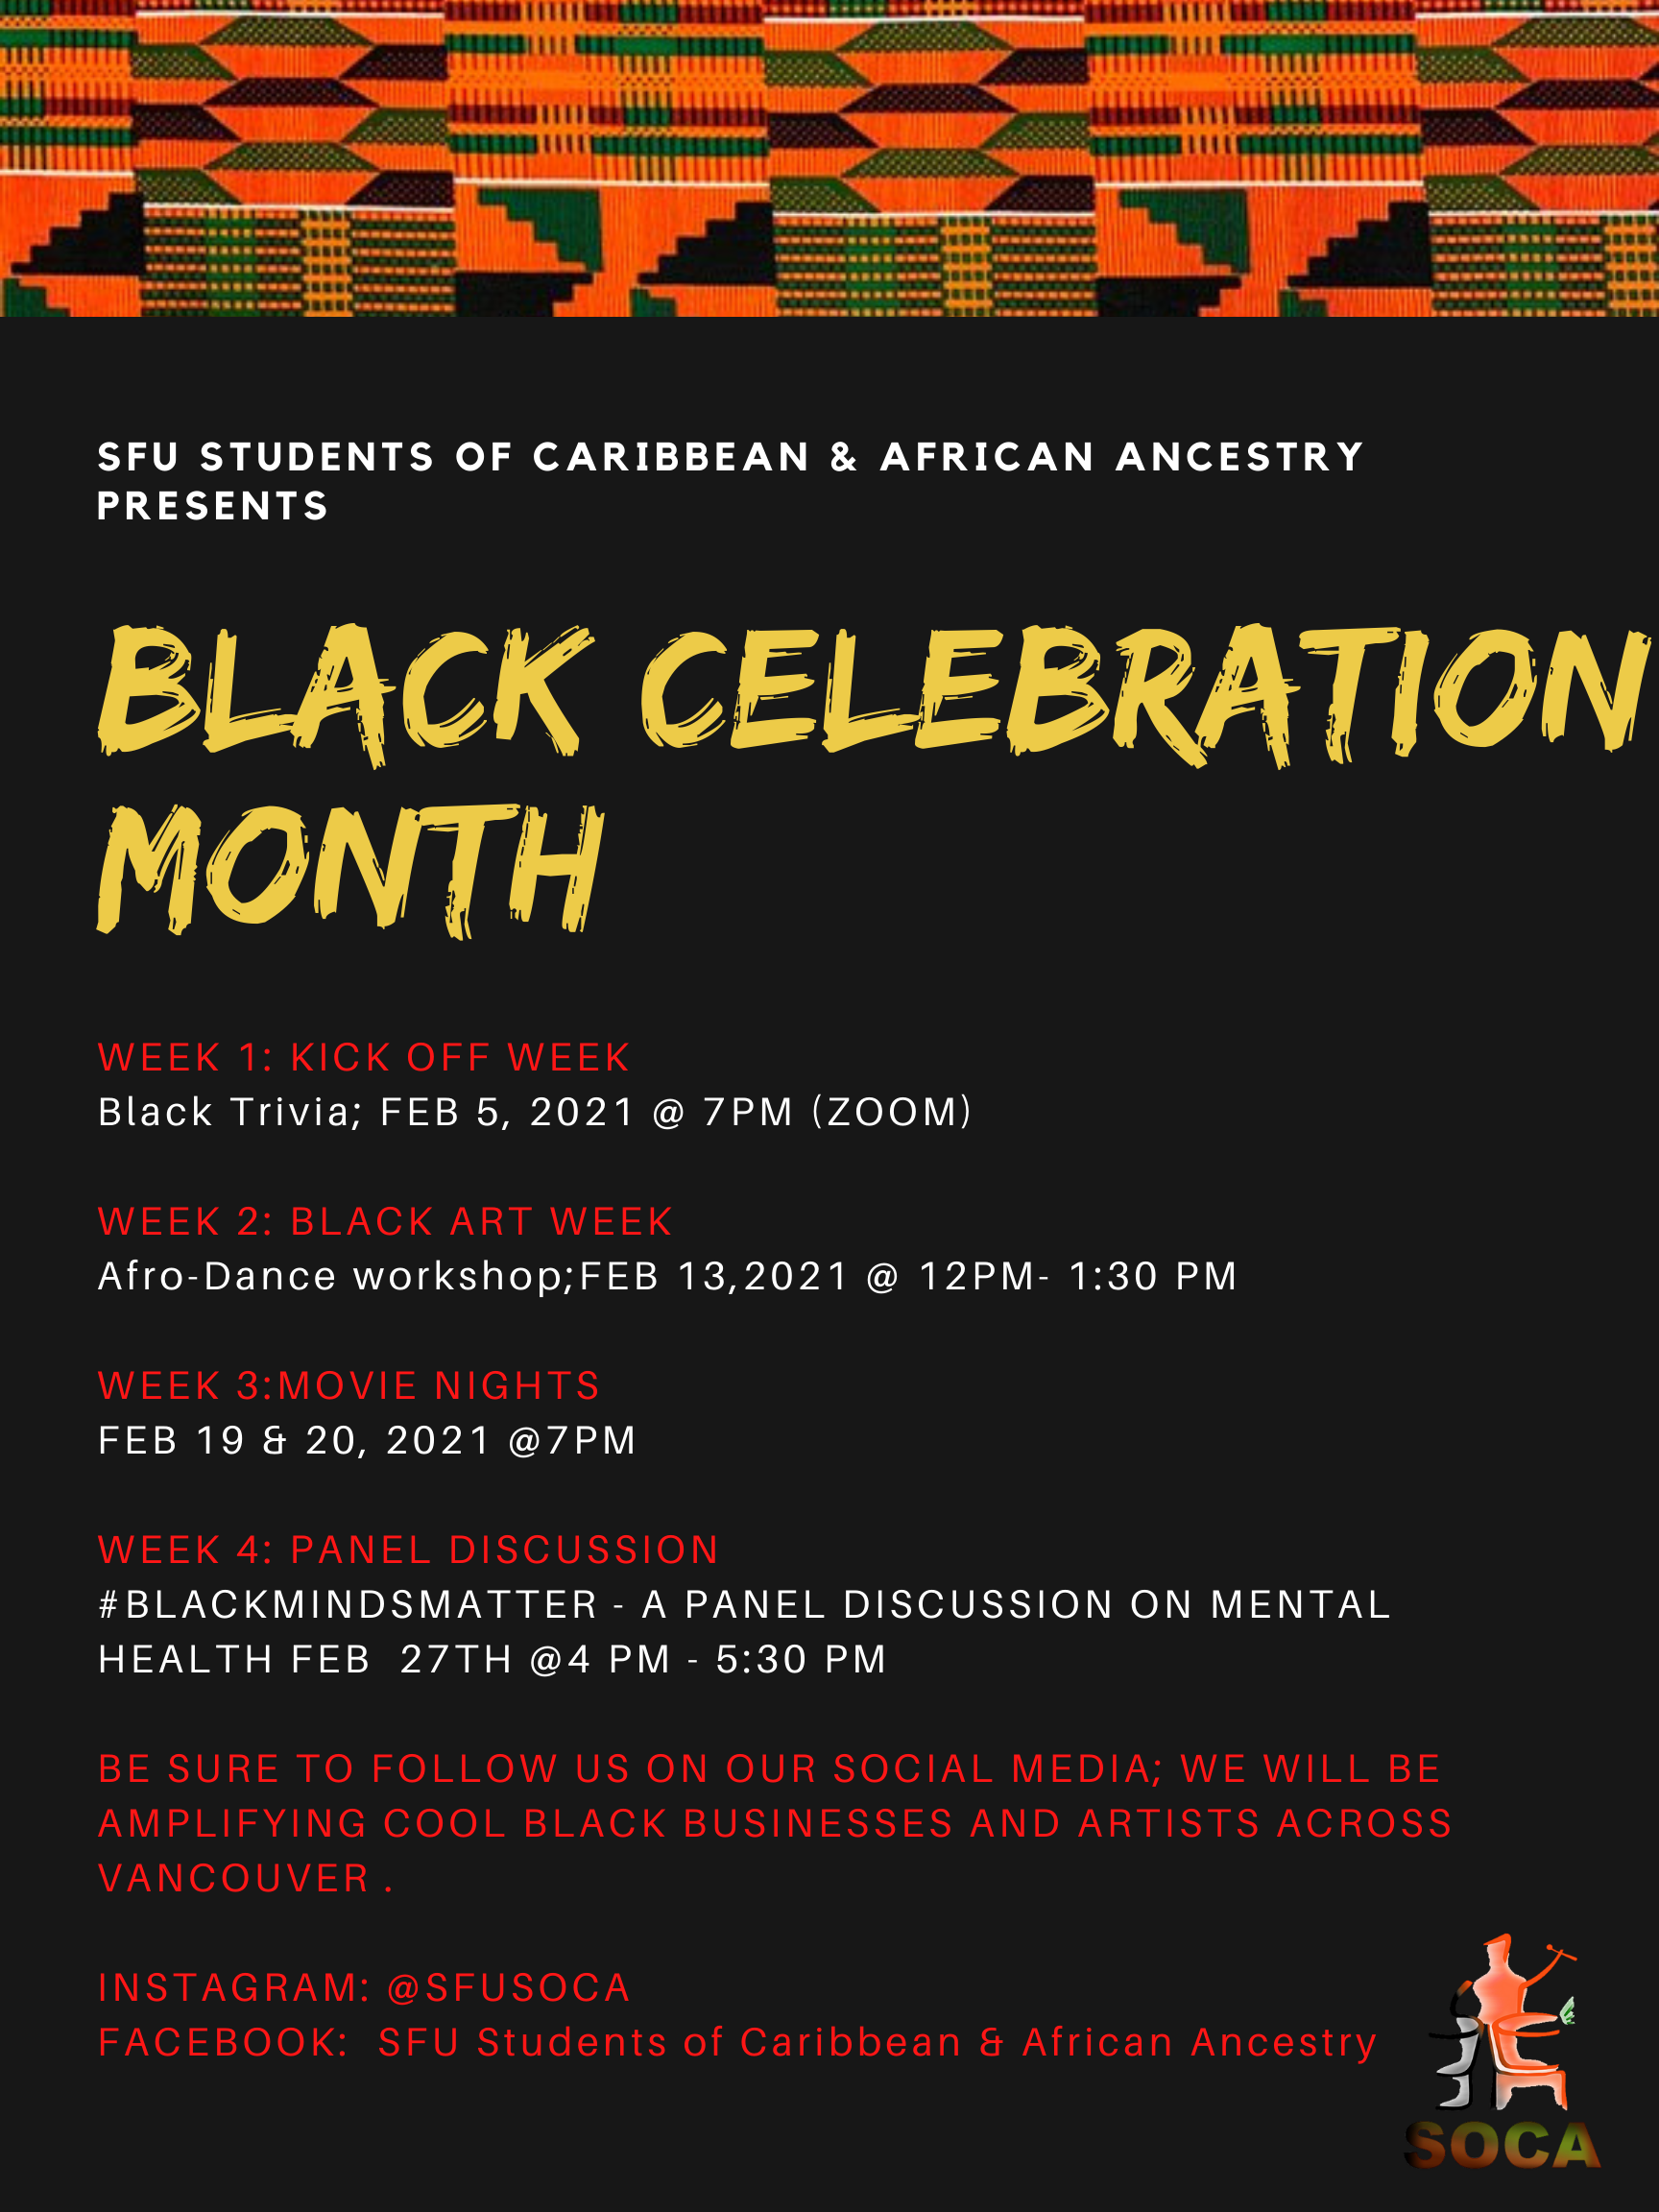 Poster advertising SOCA Black History Month events for 2021